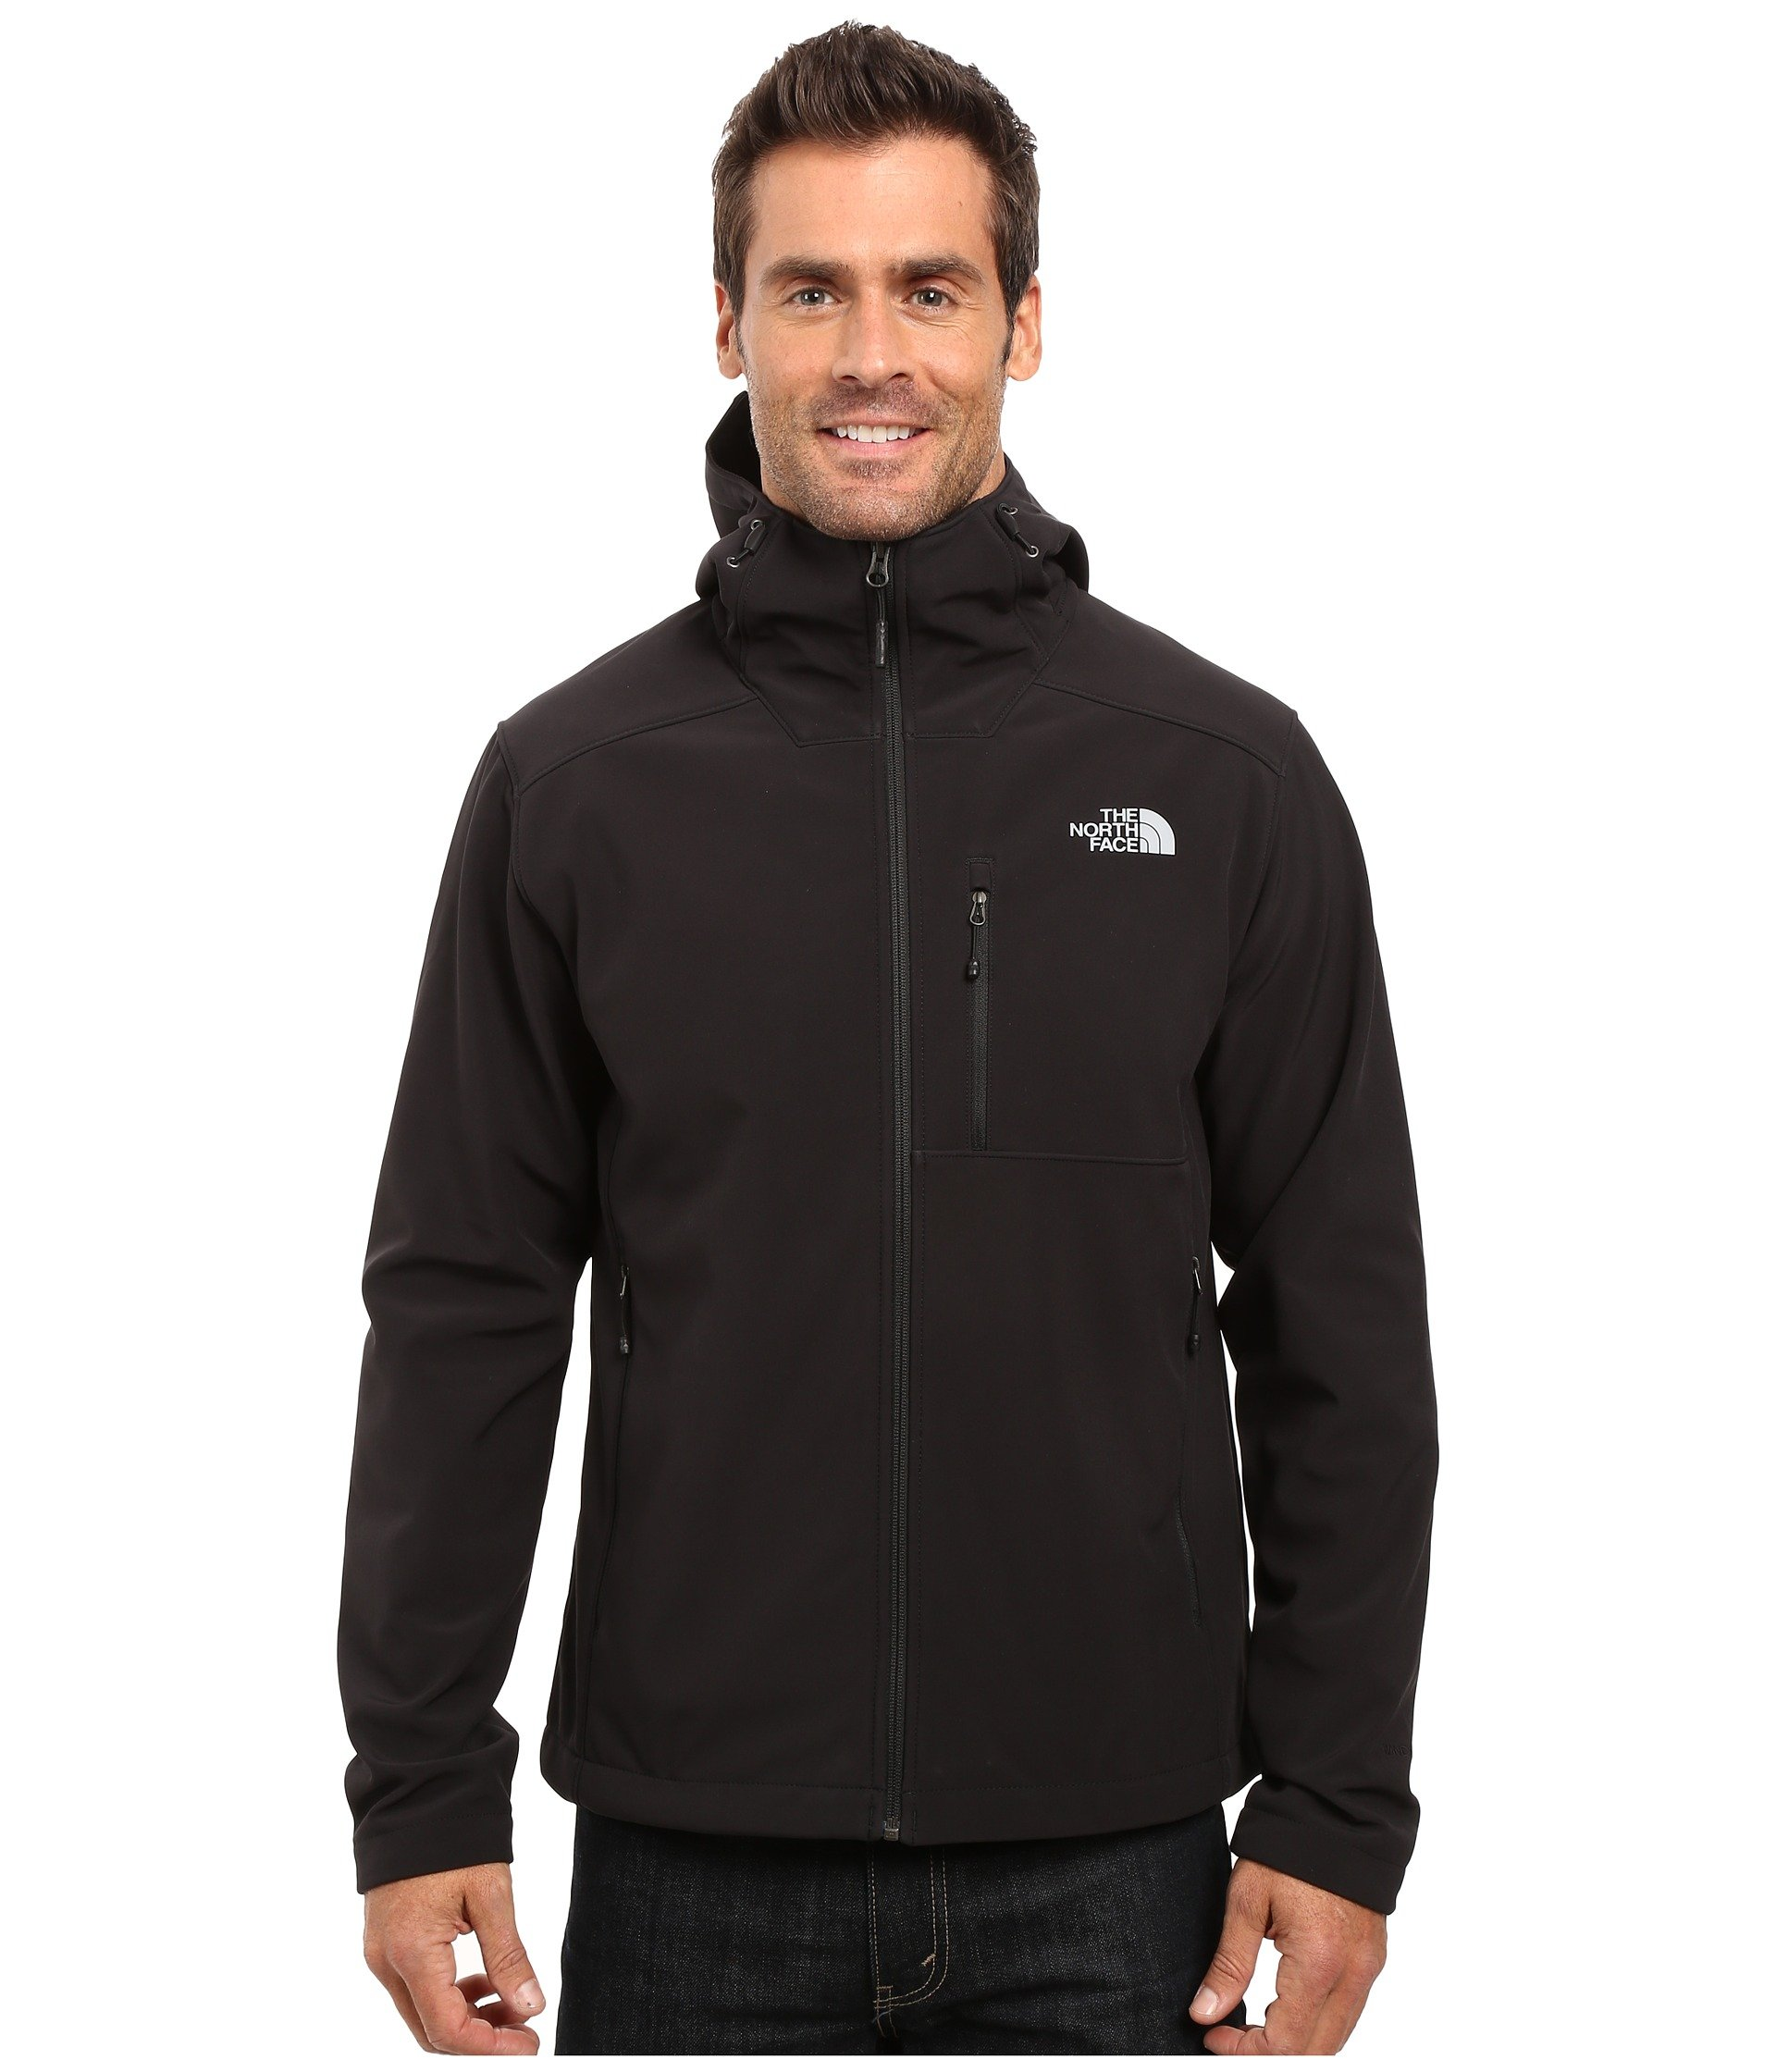 248b57b04 Details about The North Face Men's Apex Bionic 2 Hoodie TNF Black  NF0A2TBBJK3